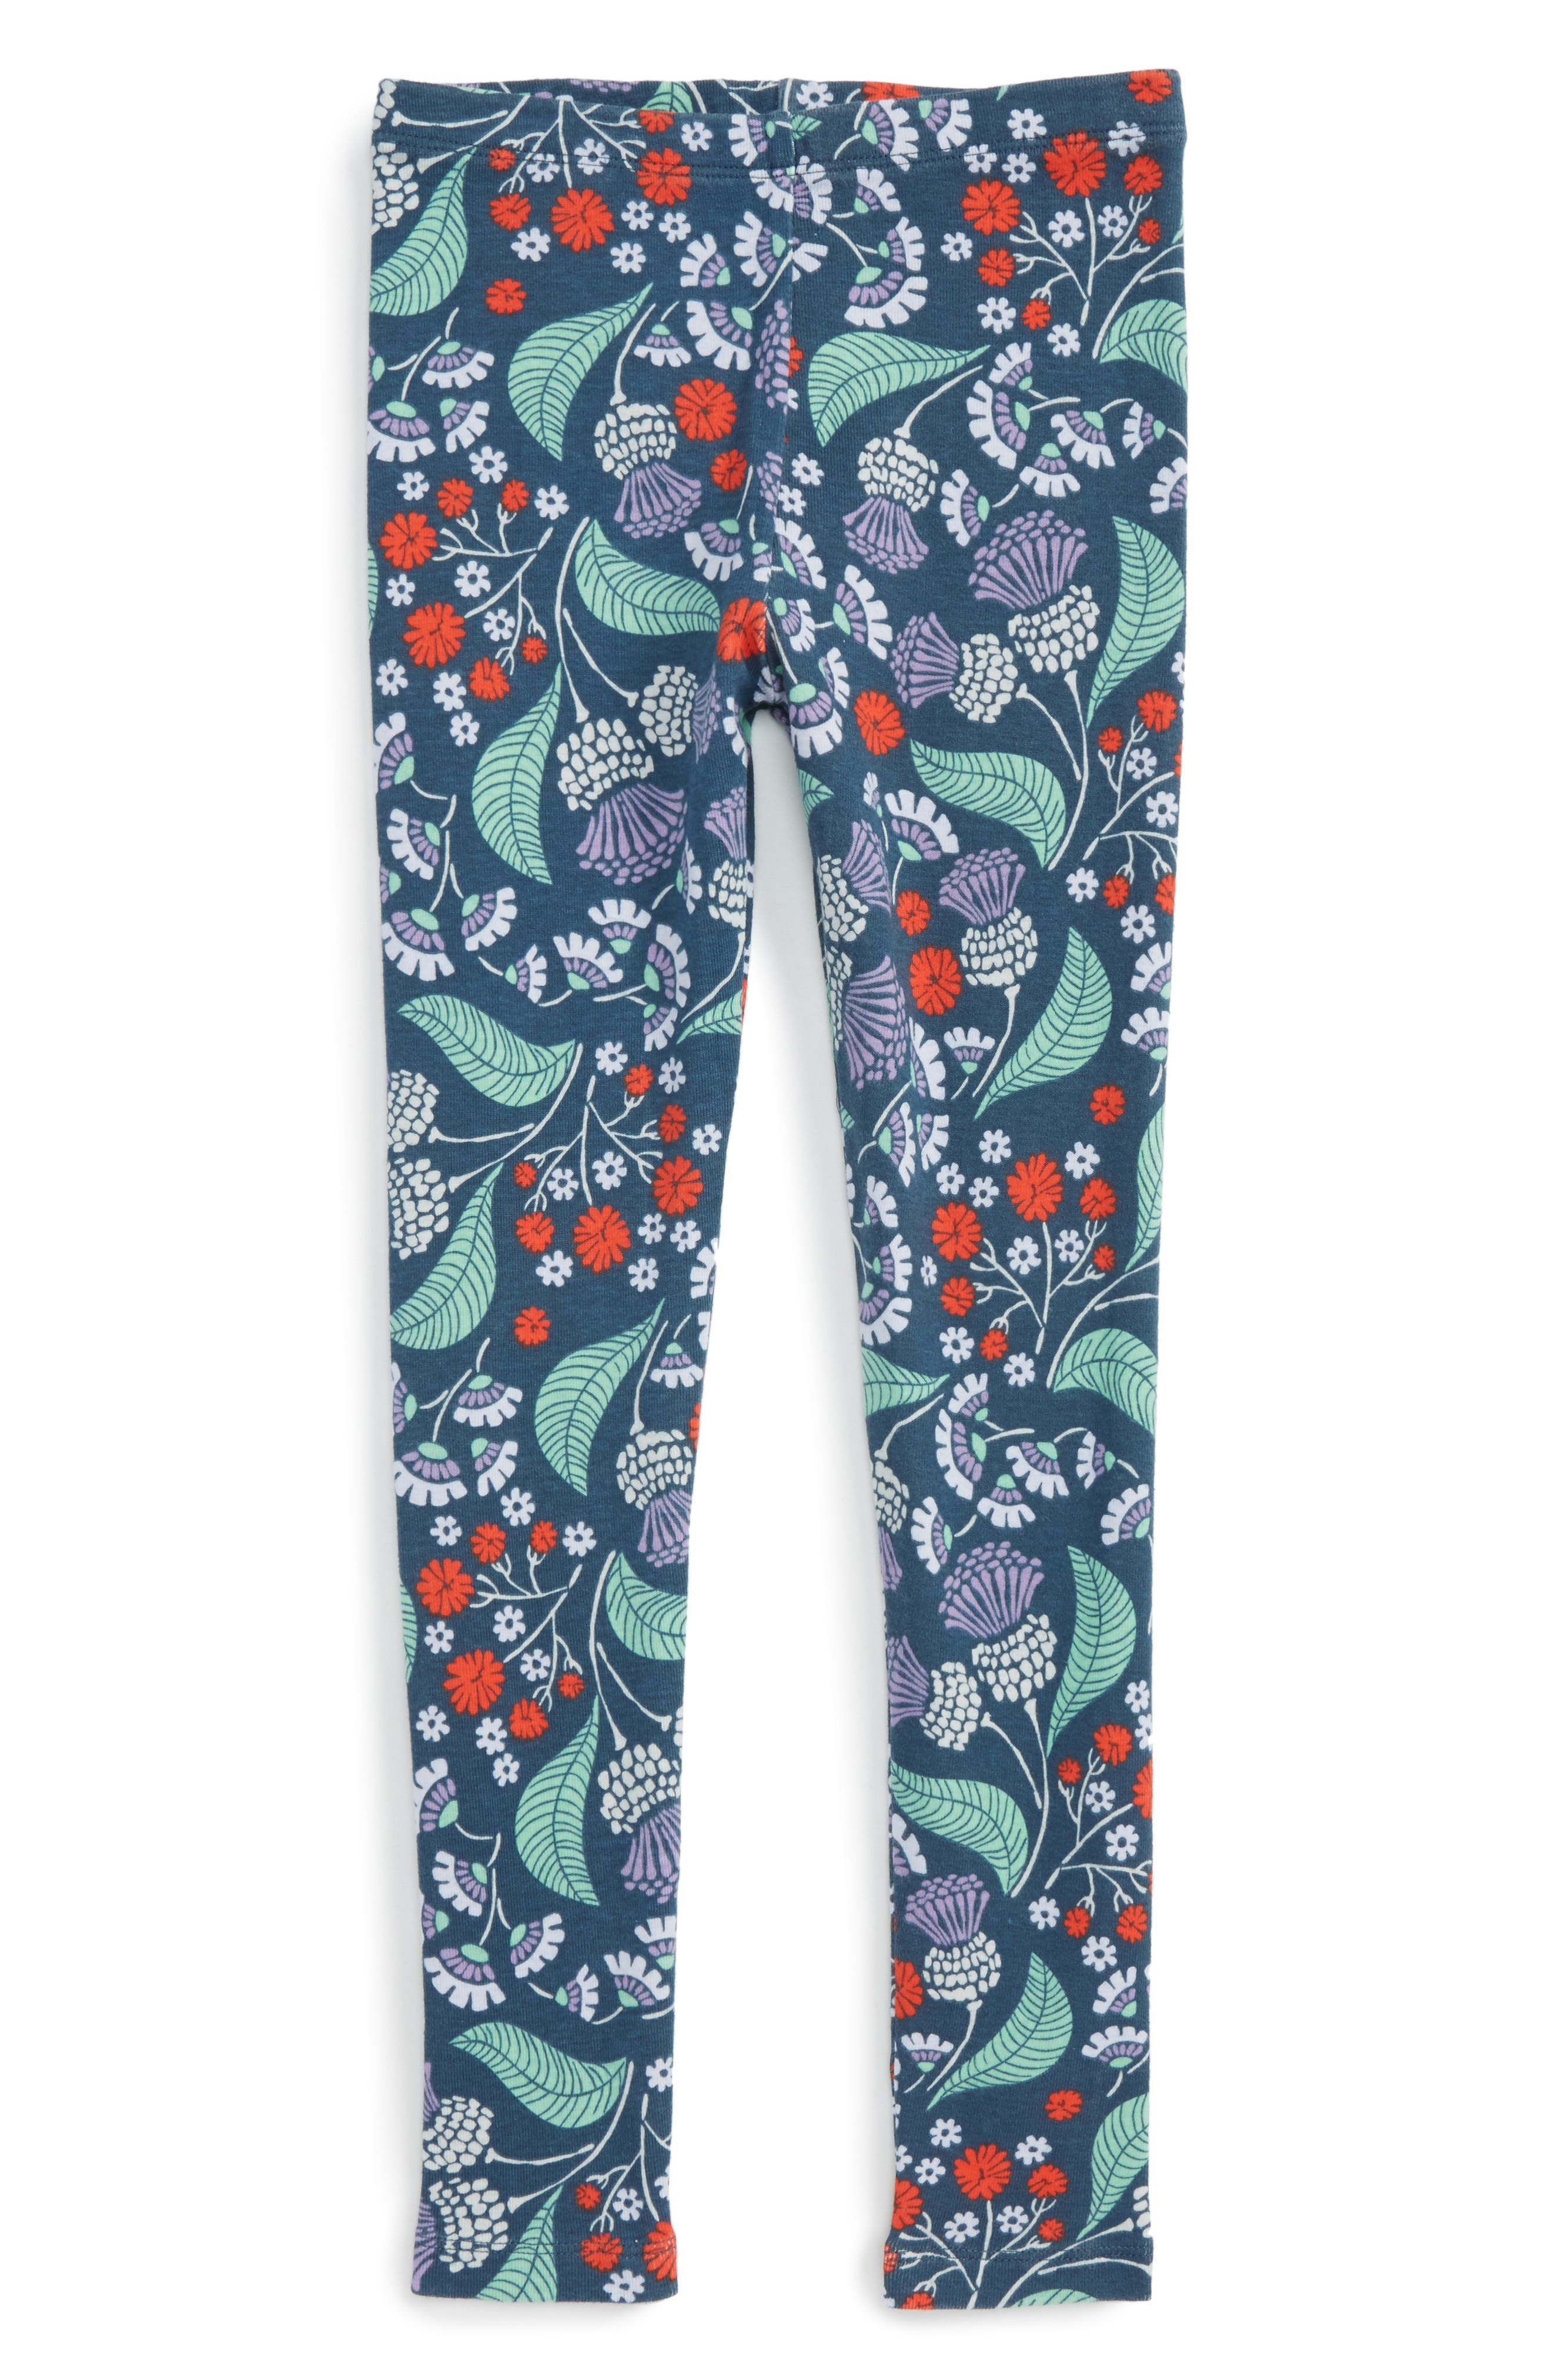 Alternate Image 1 Selected - Tea Collection Thistle Leggings (Toddler Girls, Little Girls & Big Girls)